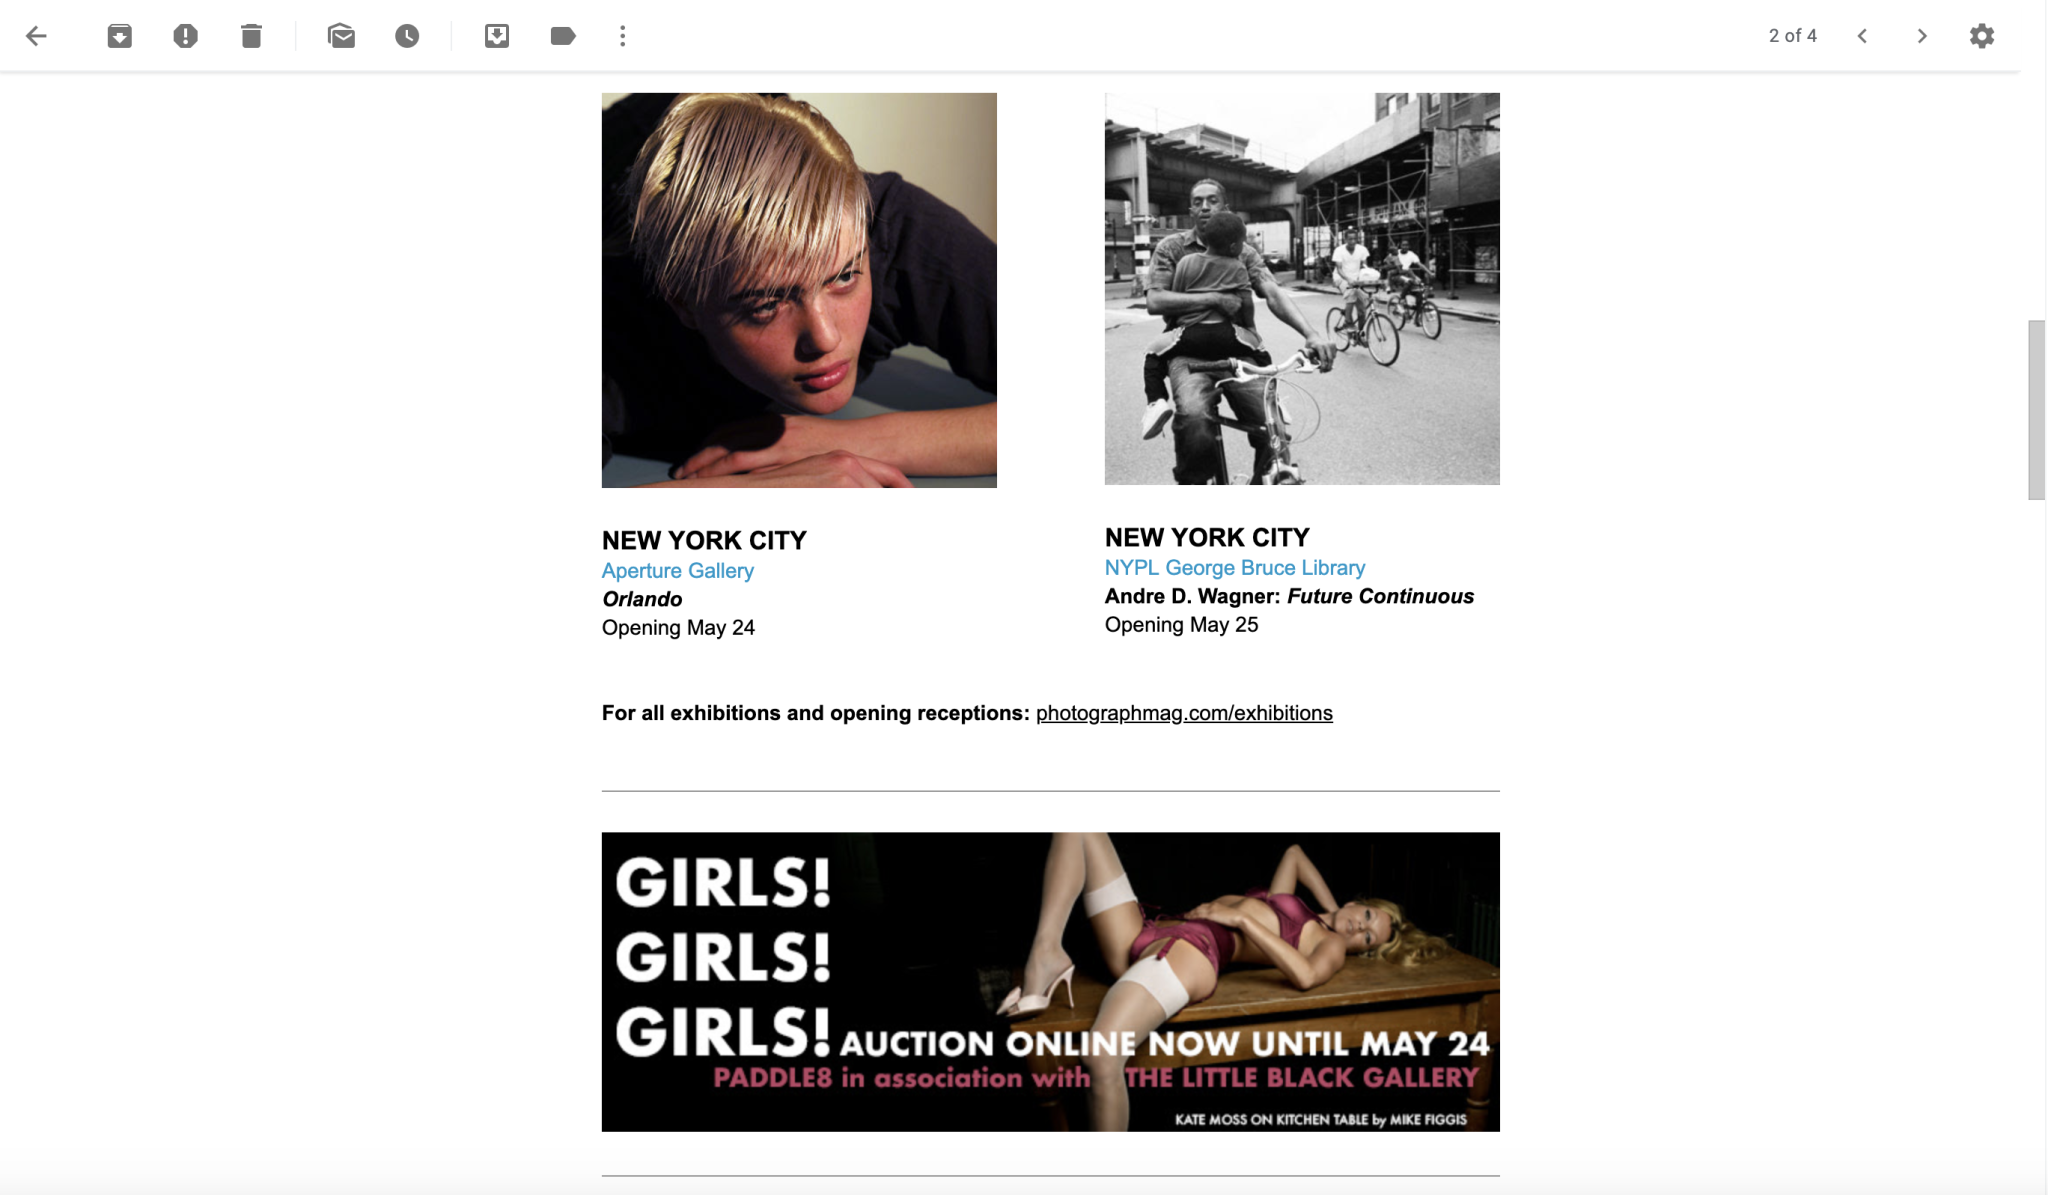 Girls! Girls! Girls!: A Take on the Objectification of Women in Photography